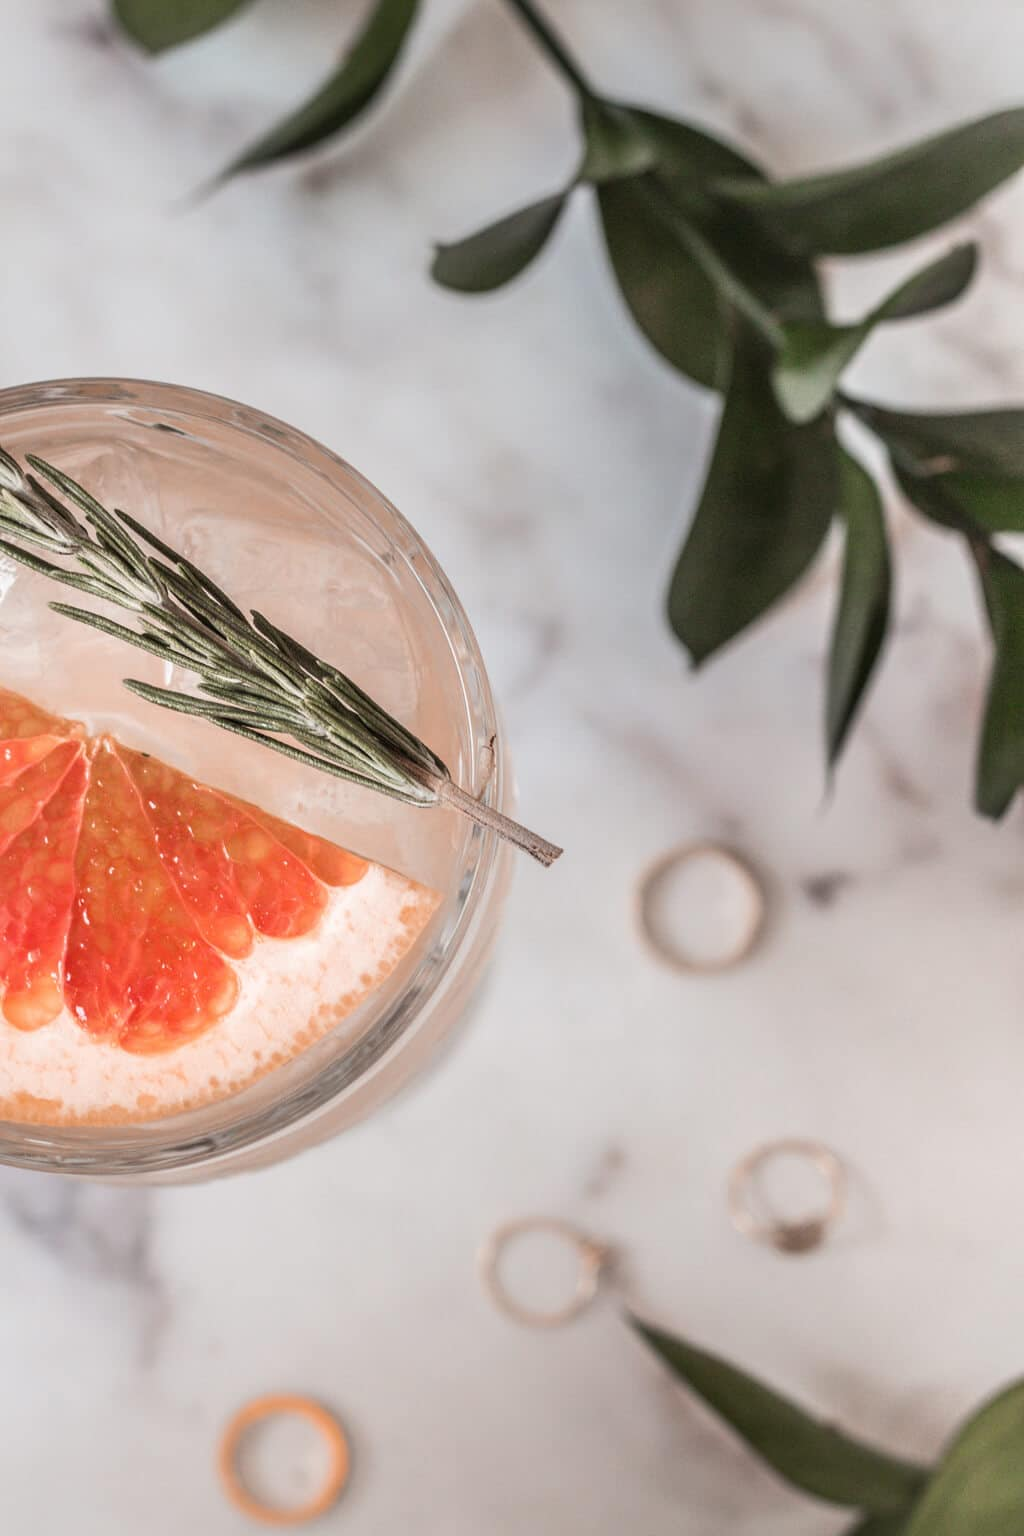 Gin and tonic with grapefruit & rosemary summer cocktail recipe - great for brunch, parties, weekends and happy hour!